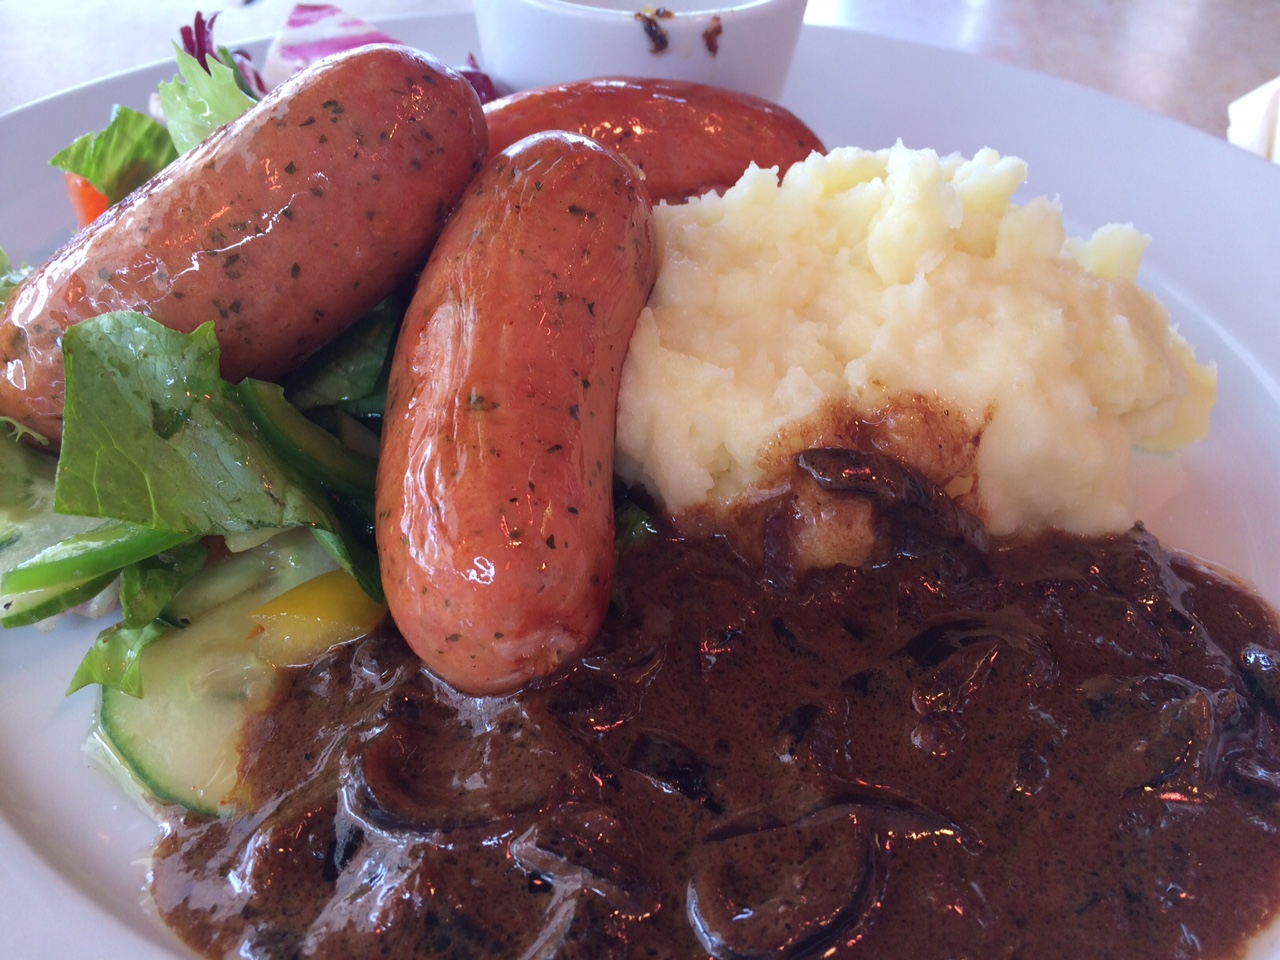 Sausages and Mash